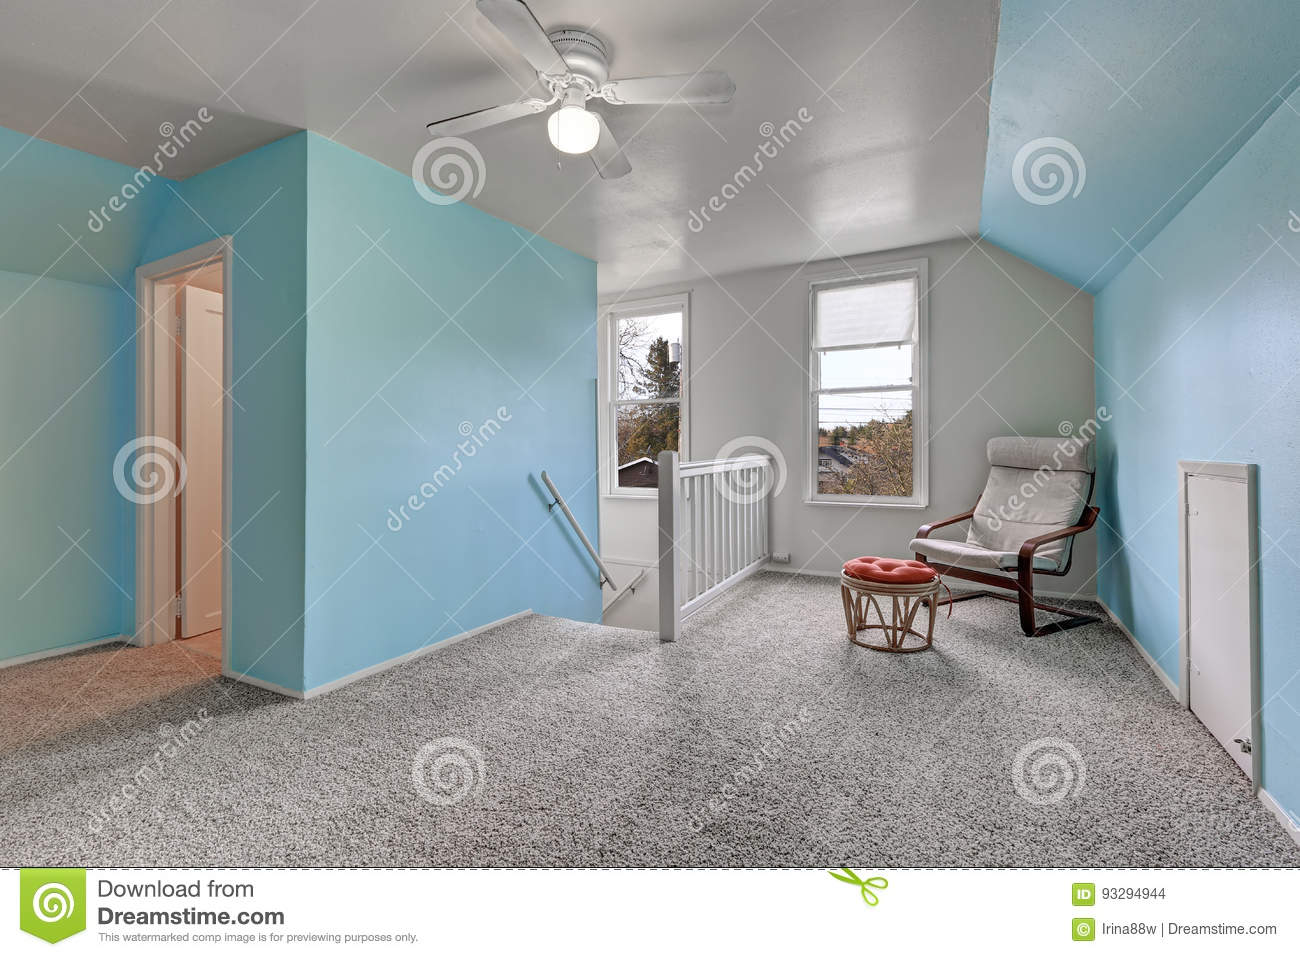 Image of: Second Floor Landing With Blue Walls Stock Photo Image Of Home Interior 93294944